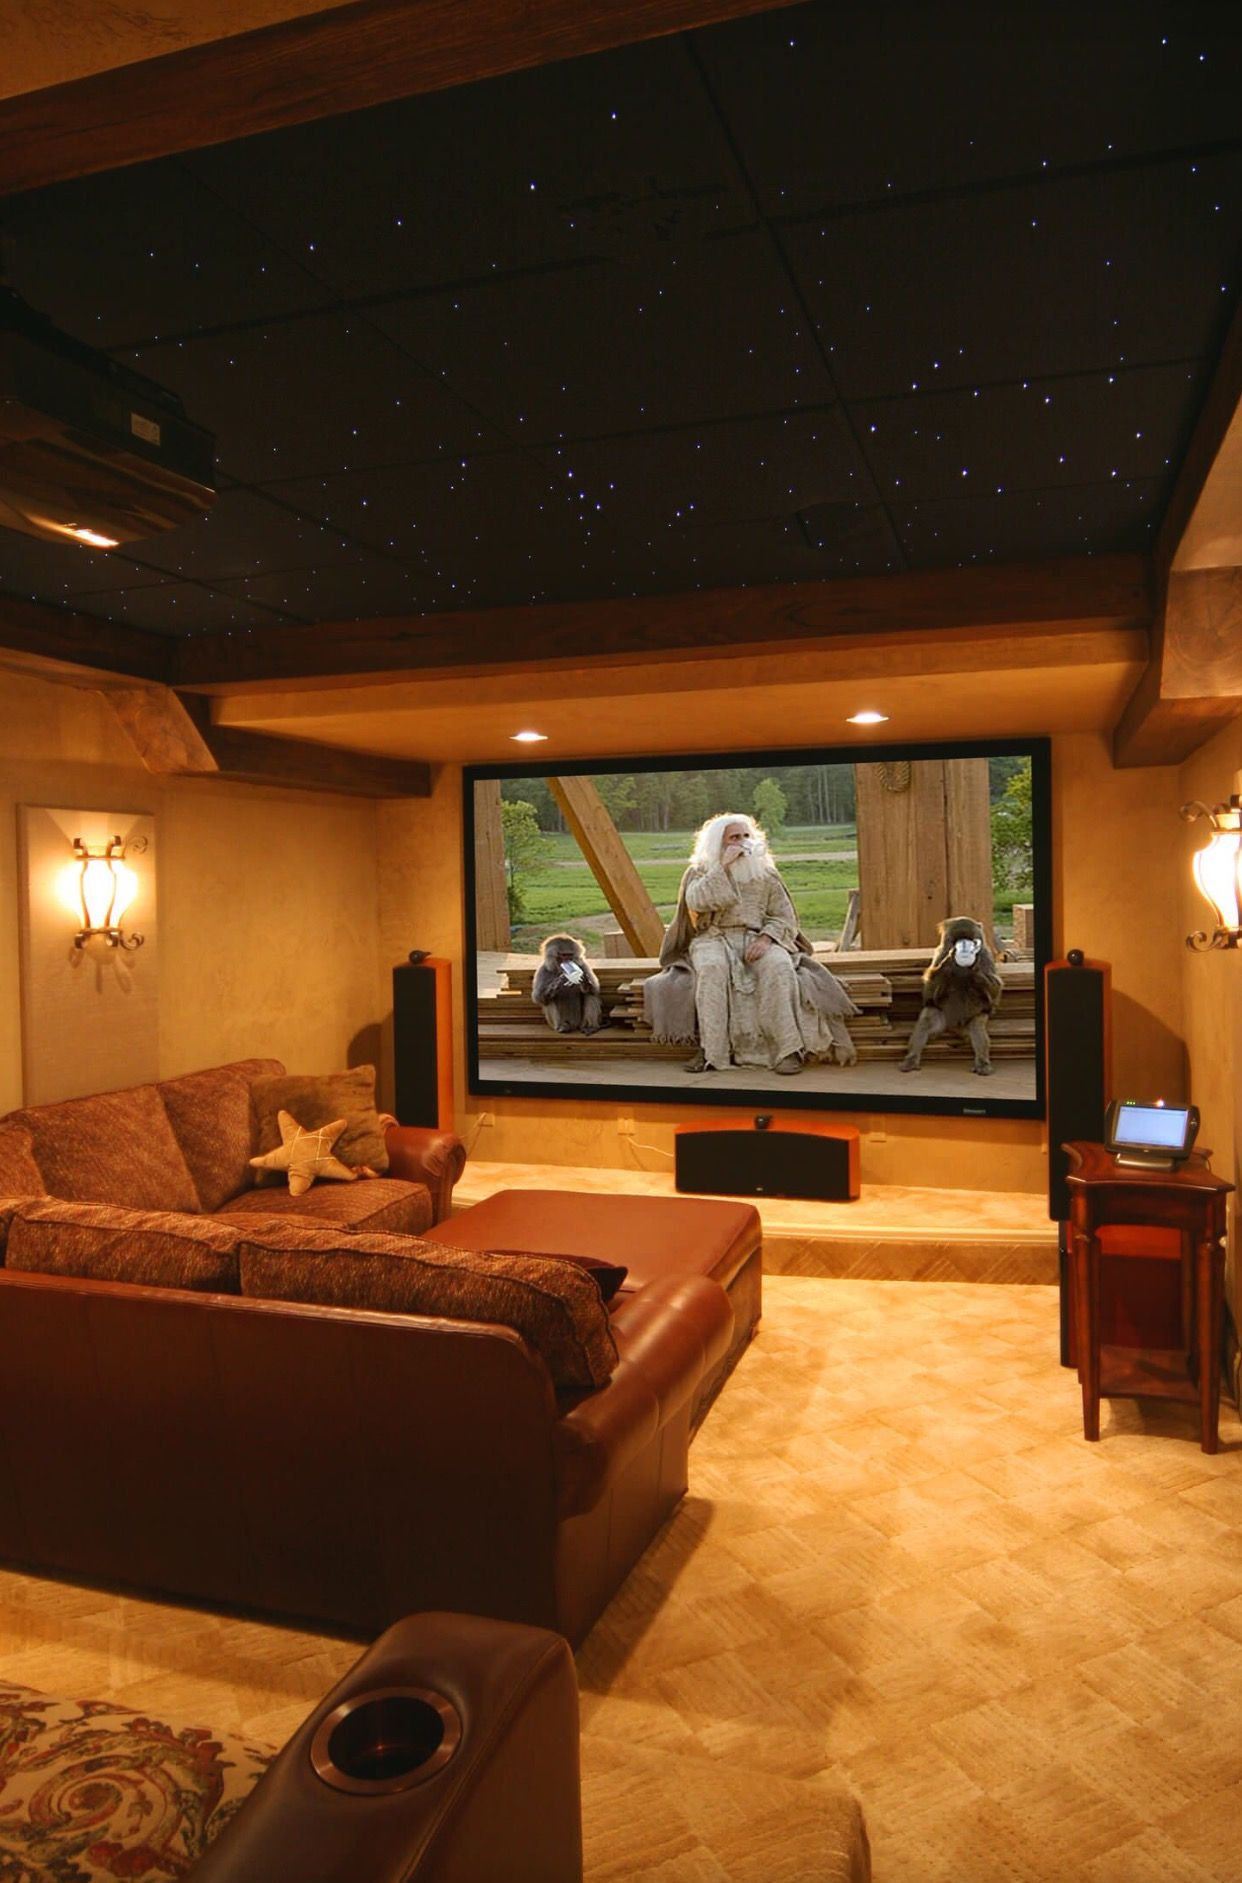 interior roo decor about room true story based movie on